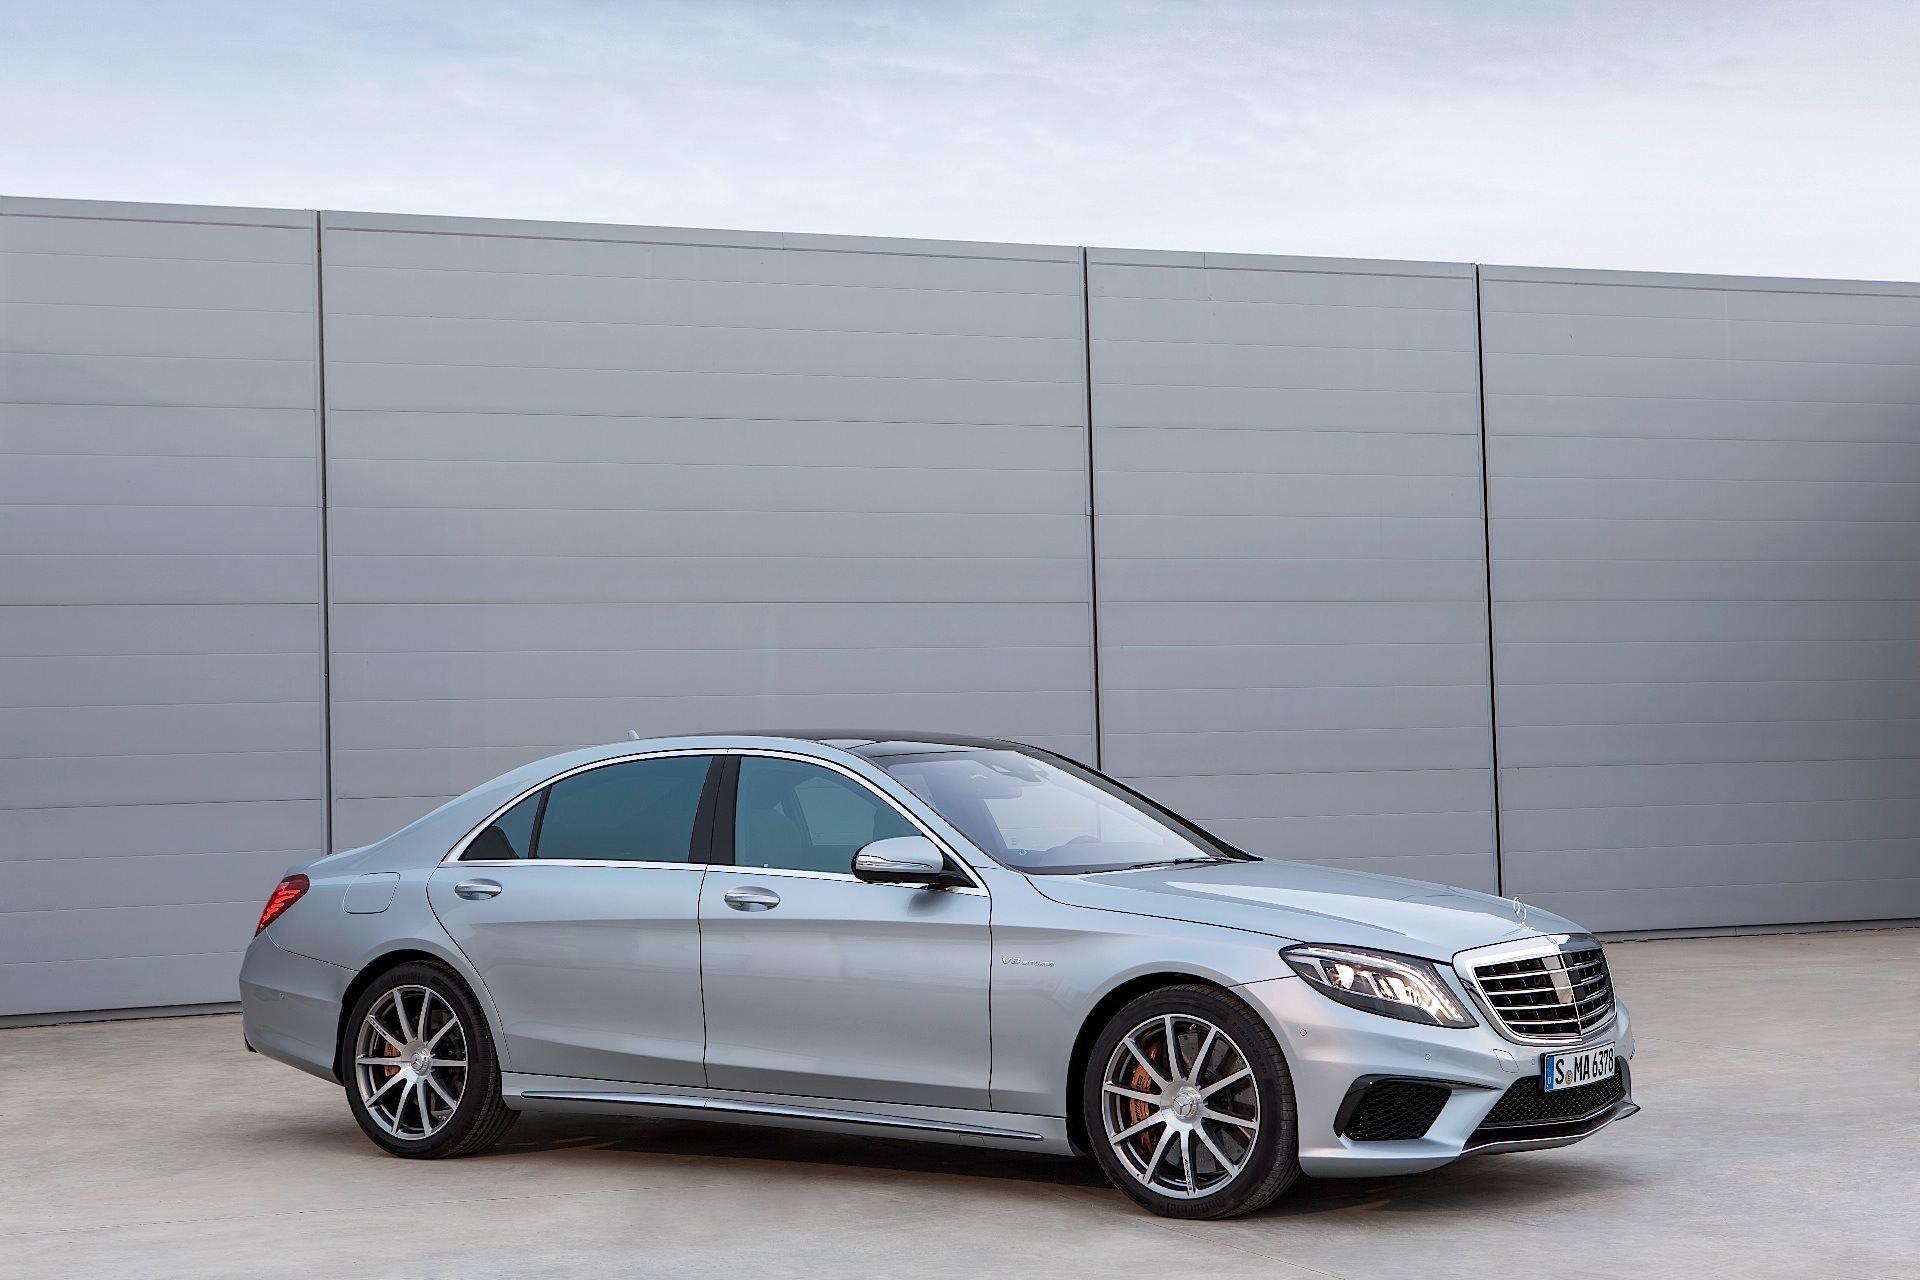 Mercedes benz s 63 amg w222 specs 2013 2014 2015 for Mercedes benz s class s63 amg